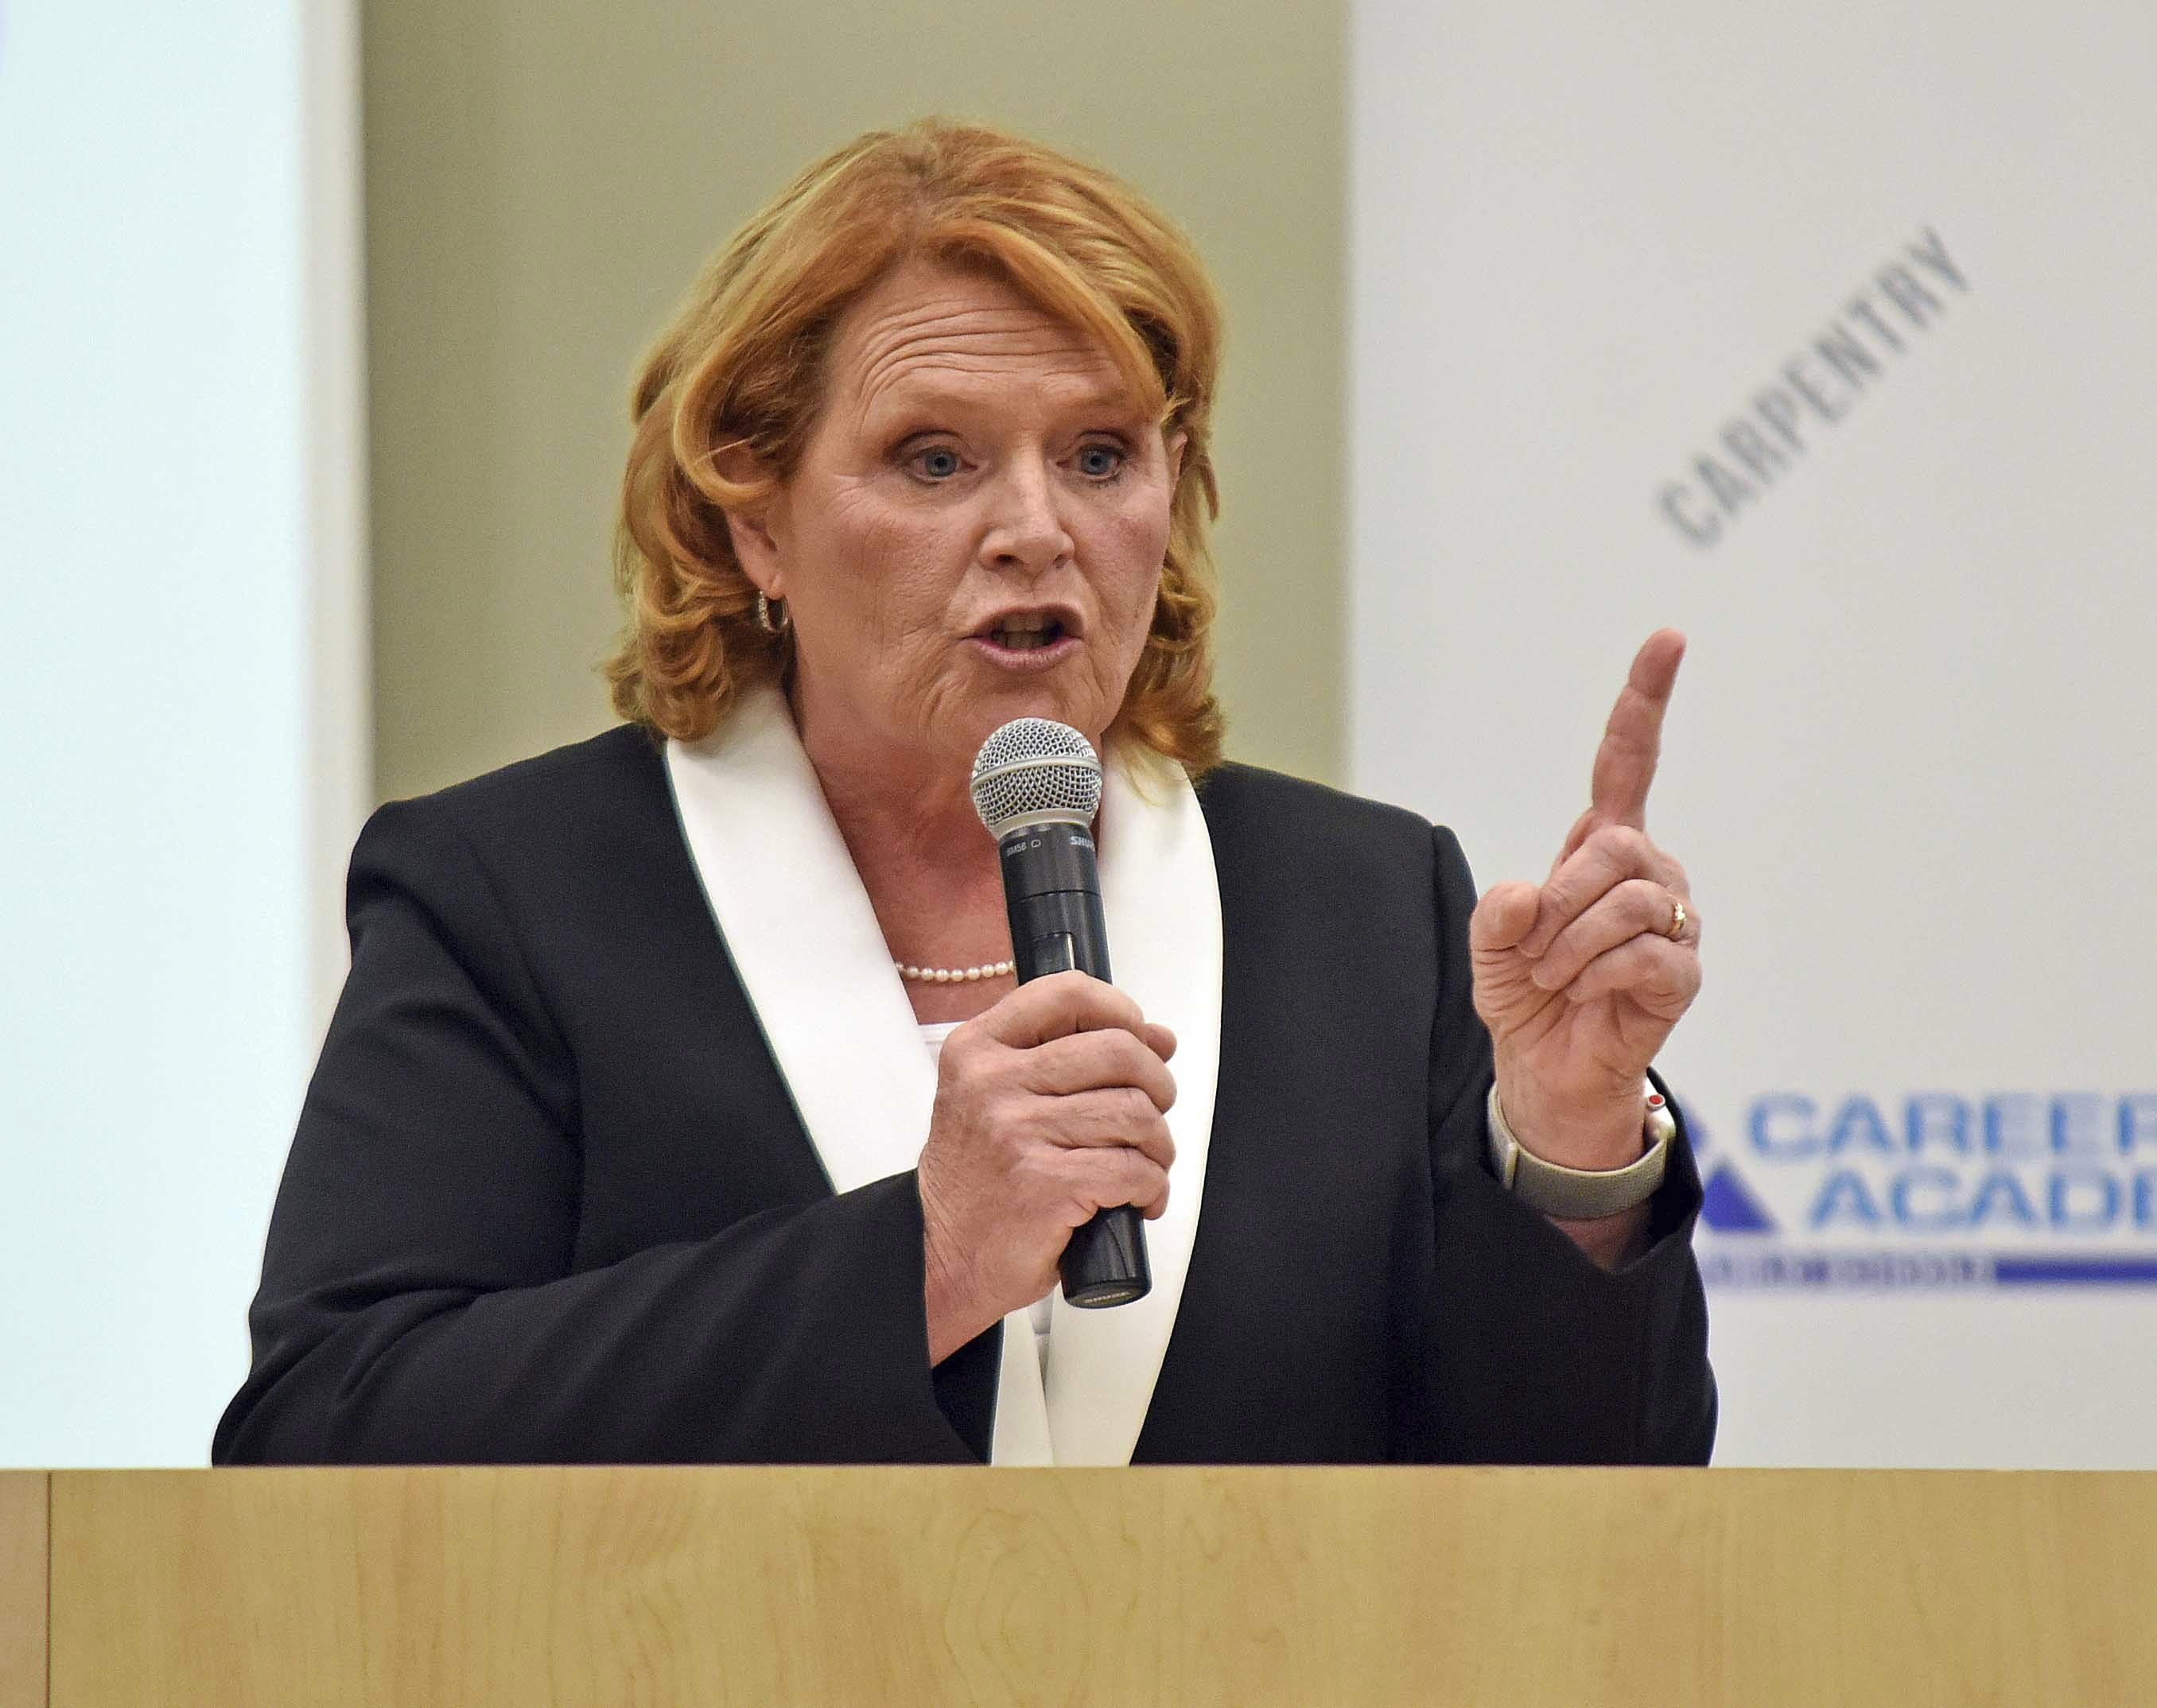 Communication on this topic: Heidi Heitkamp to vote no on Brett , heidi-heitkamp-to-vote-no-on-brett/